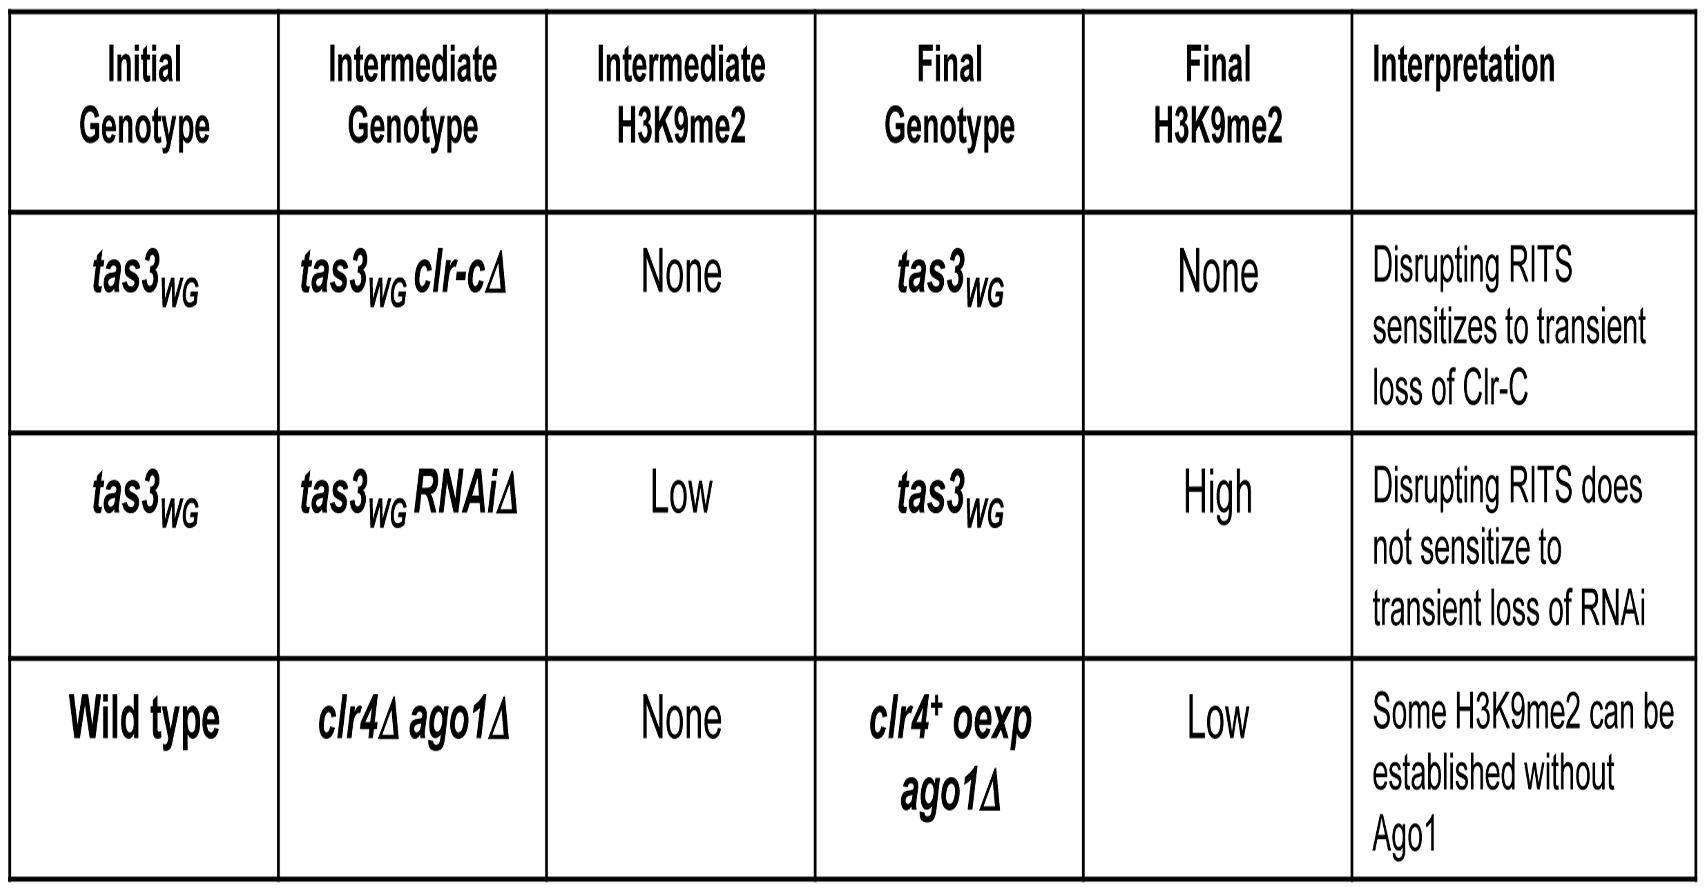 Table summarizing results from this study.